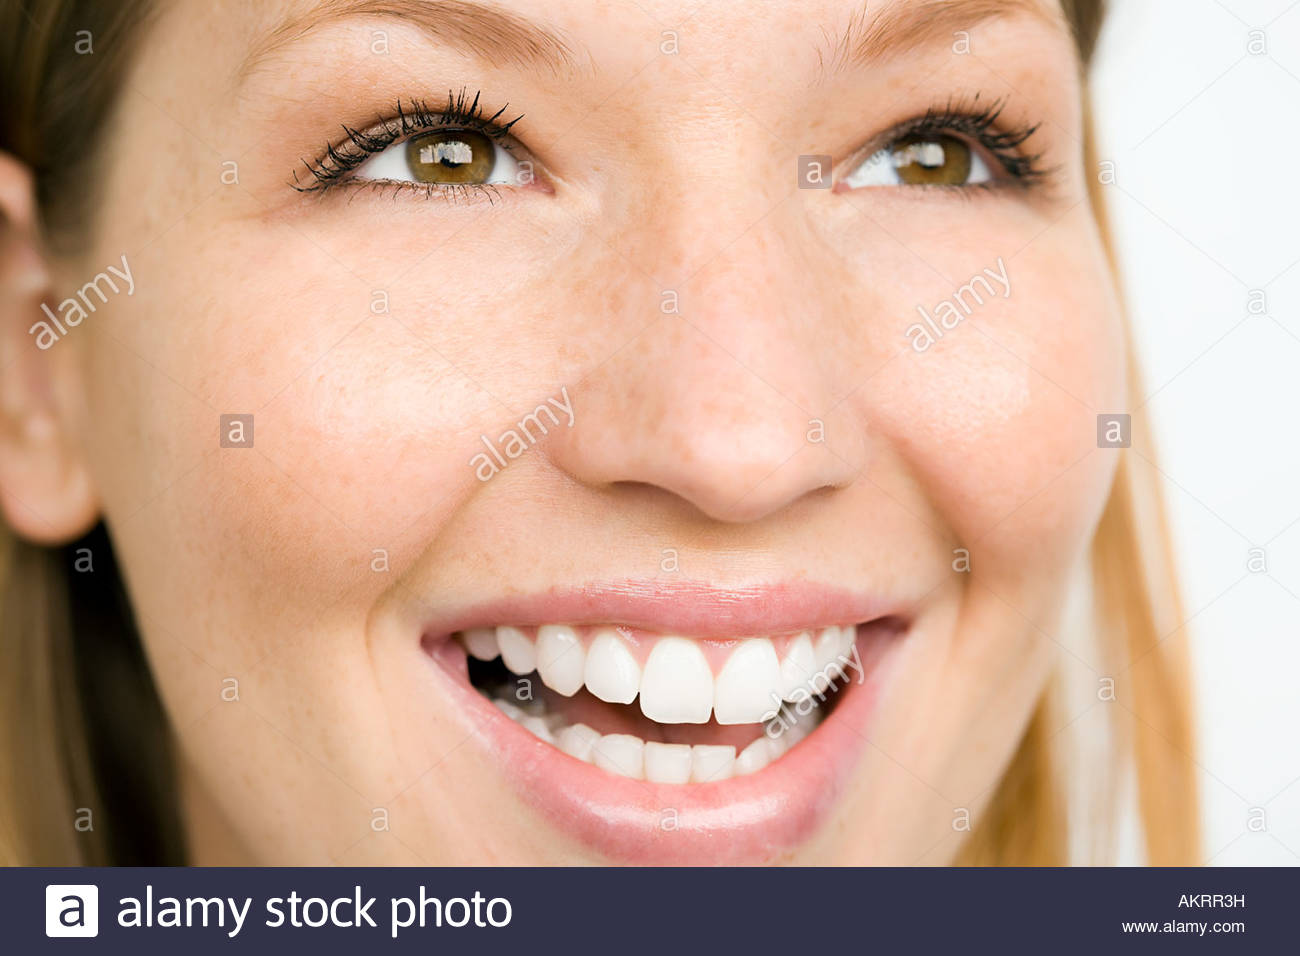 Portrait of a smiling woman Photo Stock